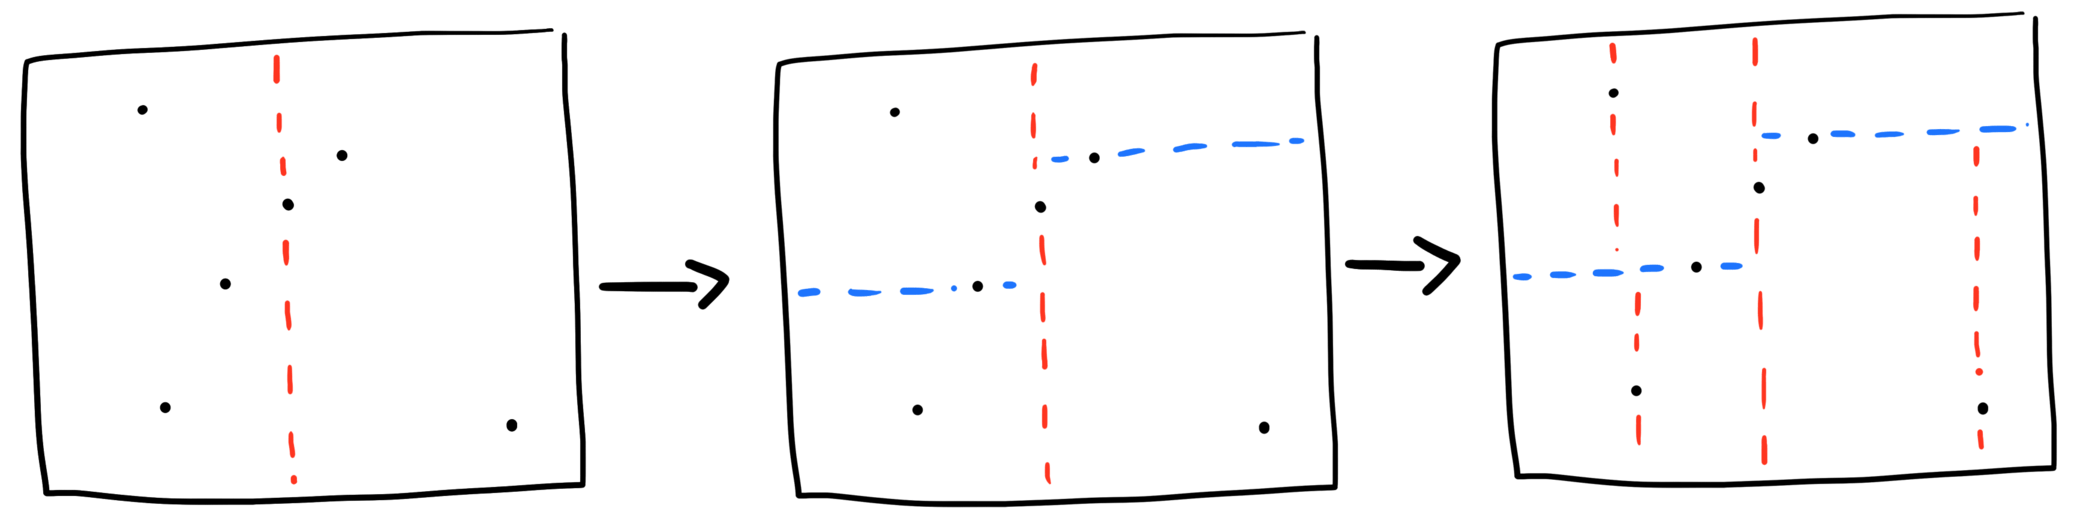 points in two dimensional space divided up through both horizontal and vertical lines